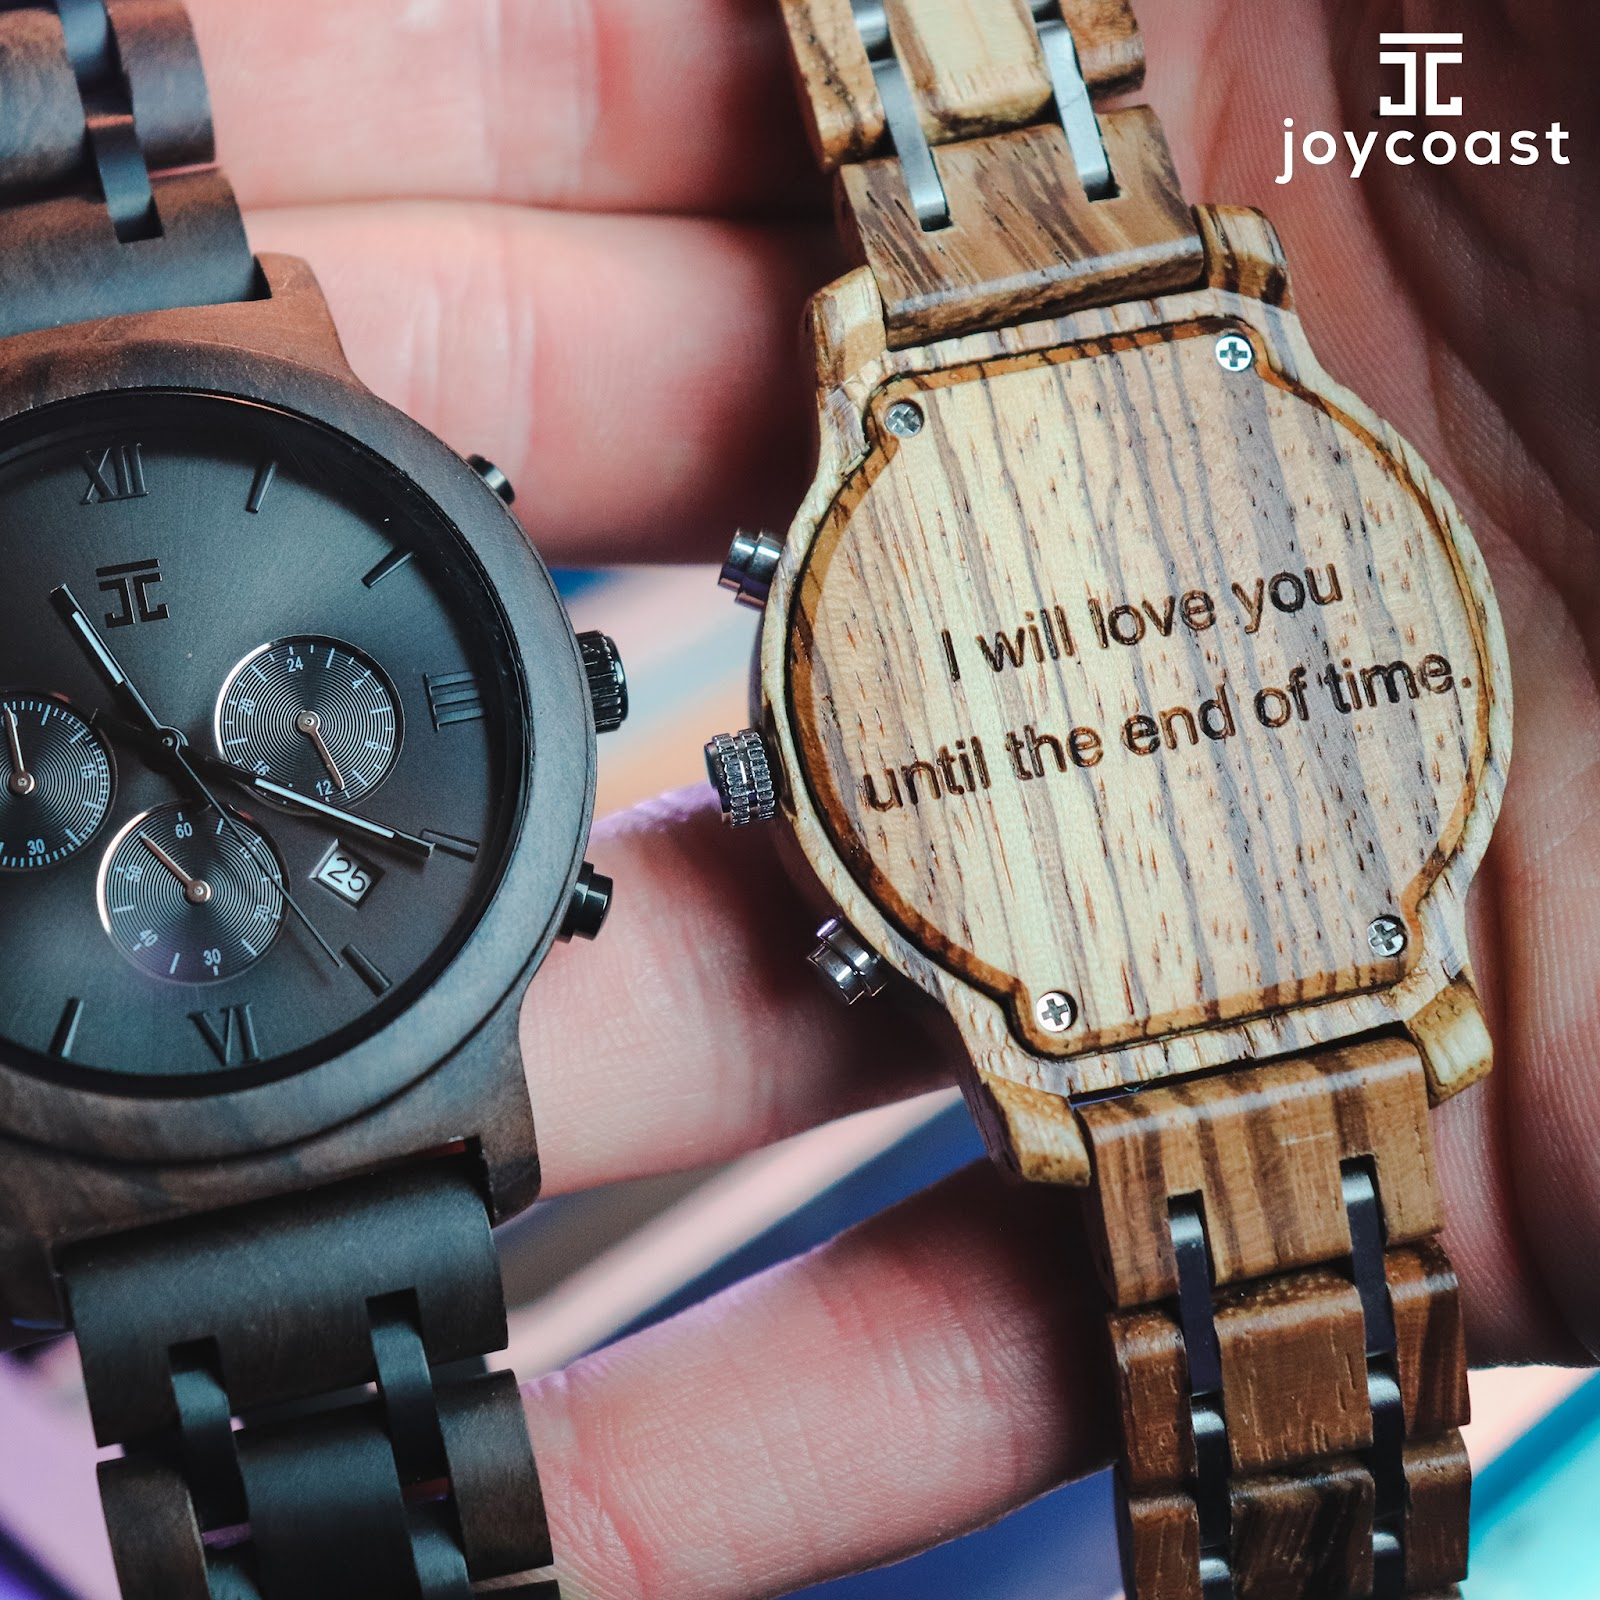 "Face of wooden watch on the left. Wooden watch engraved with a quote saying ""I will love you until the end of time."" on the right."